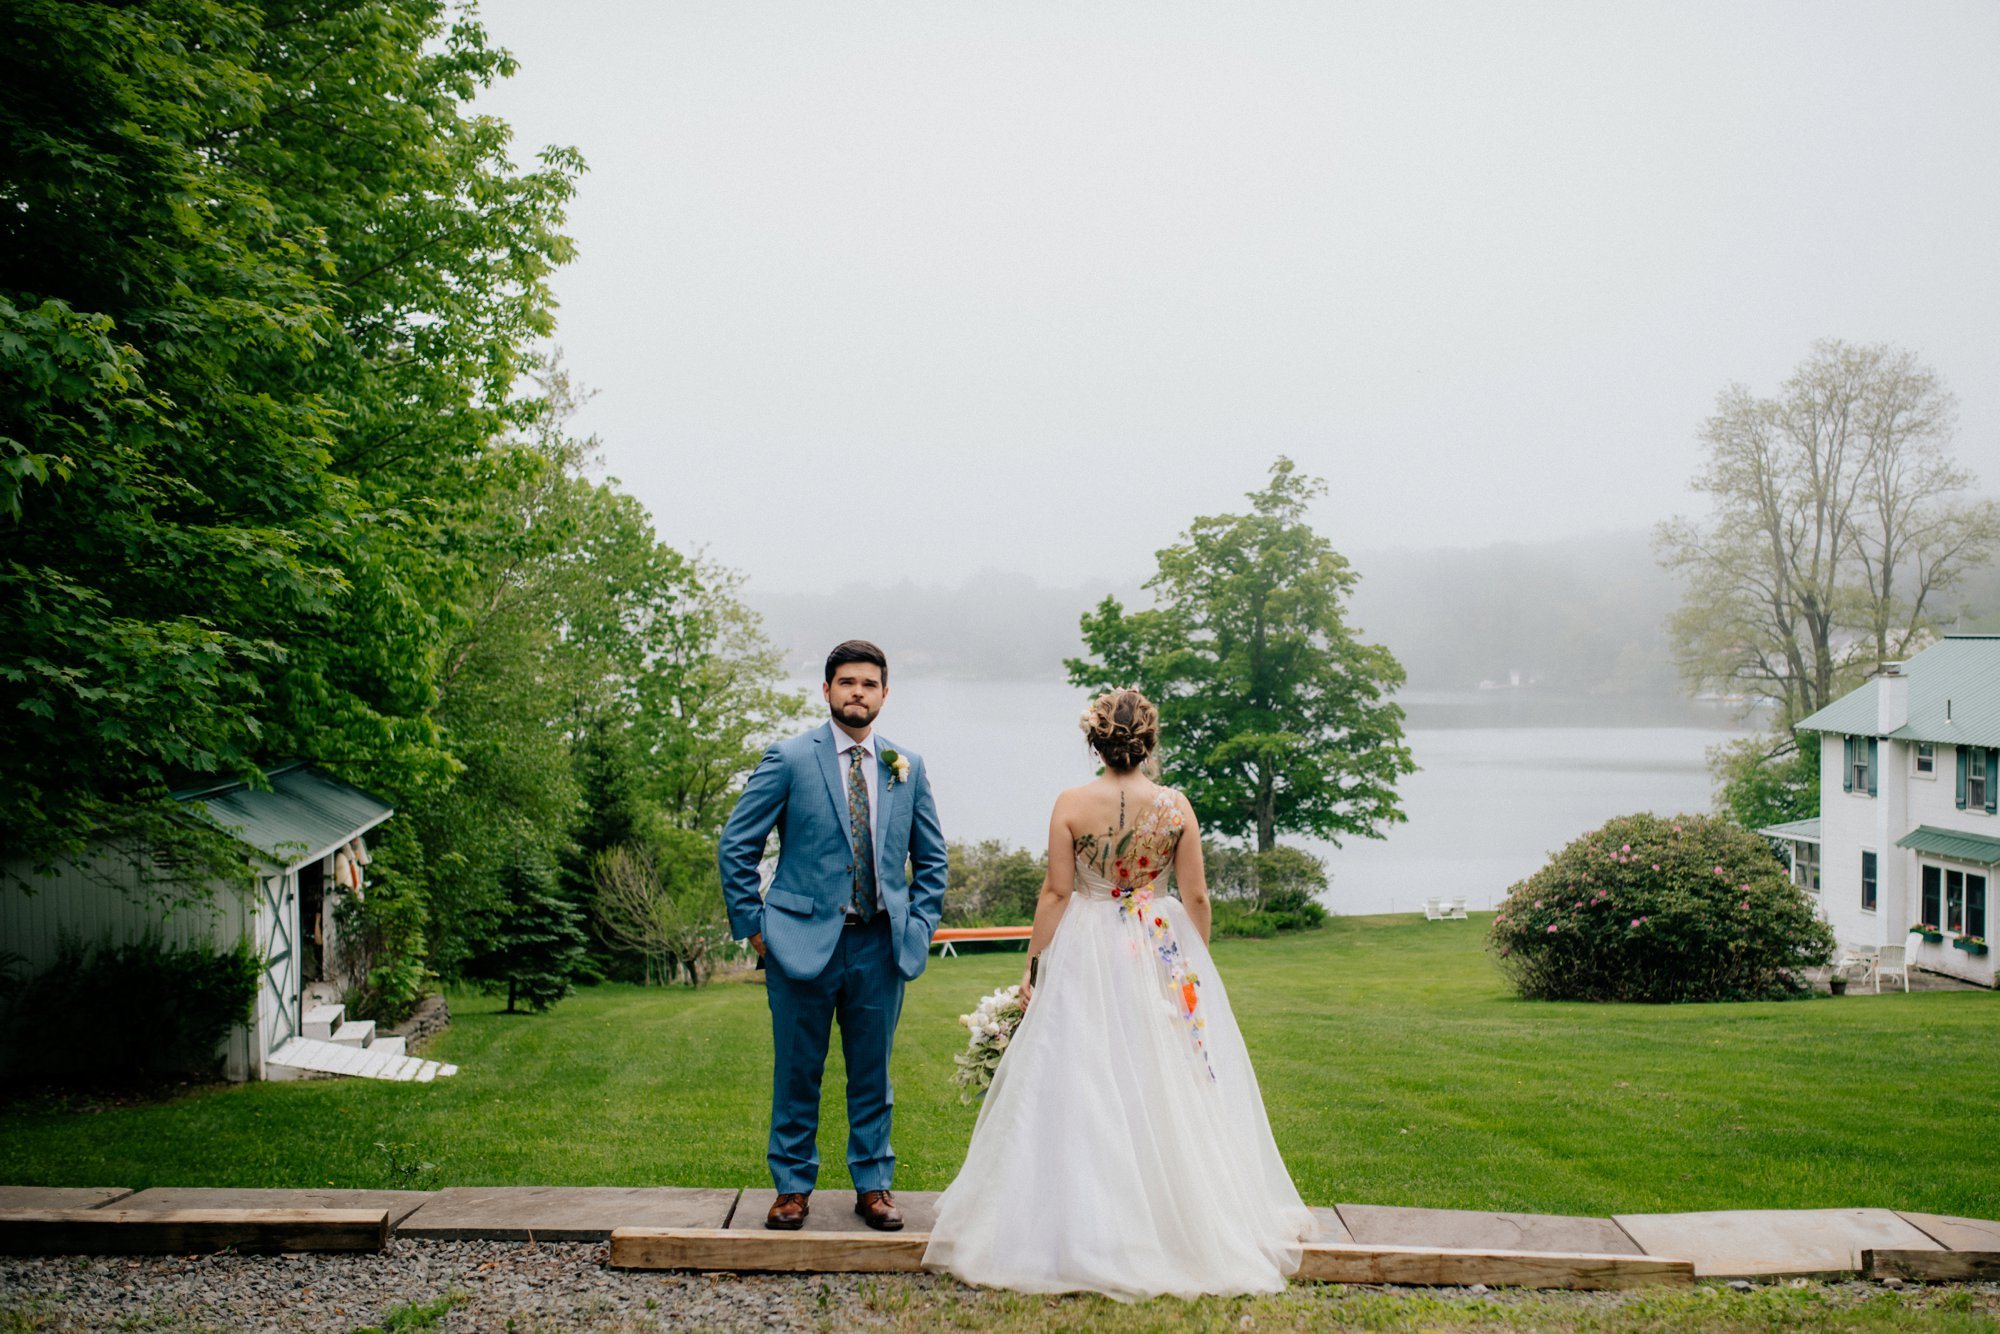 Fiddle Lake Farm Philadelphia Pennsylvania Misty Rustic Wedding with Lush Florals Portraits